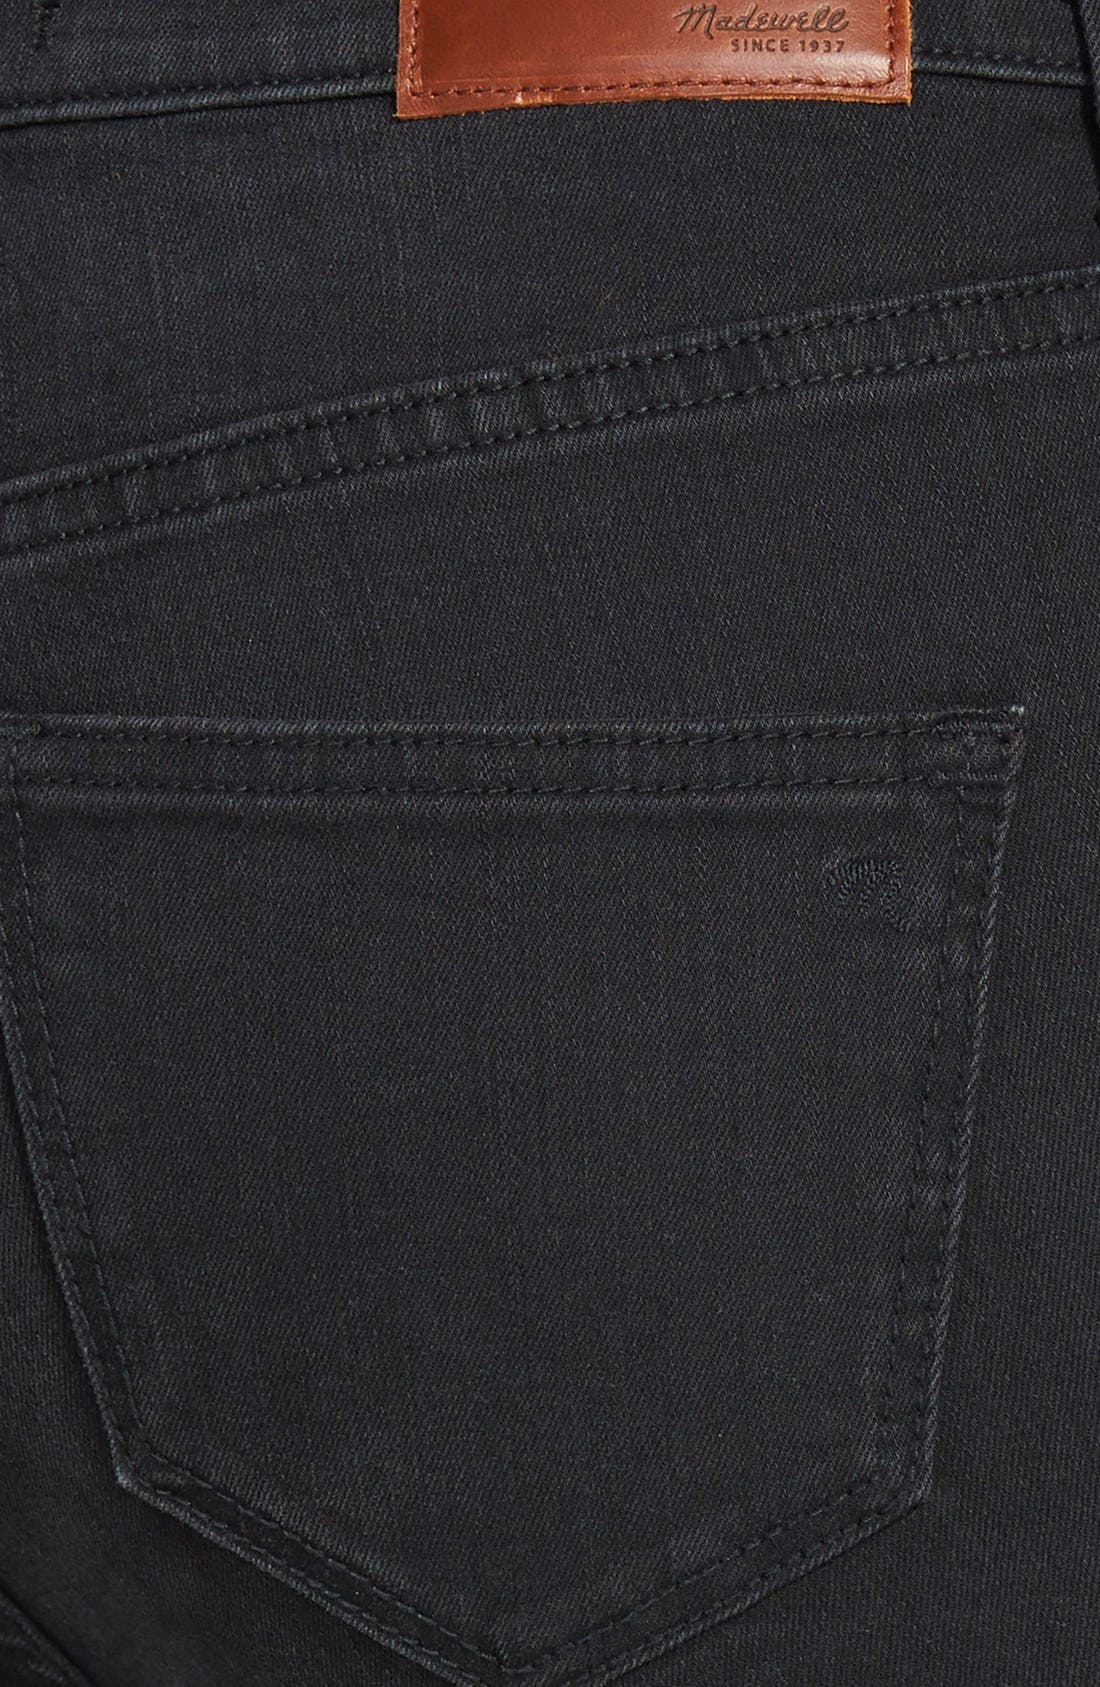 9-Inch High-Rise Skinny Jeans,                             Alternate thumbnail 7, color,                             001